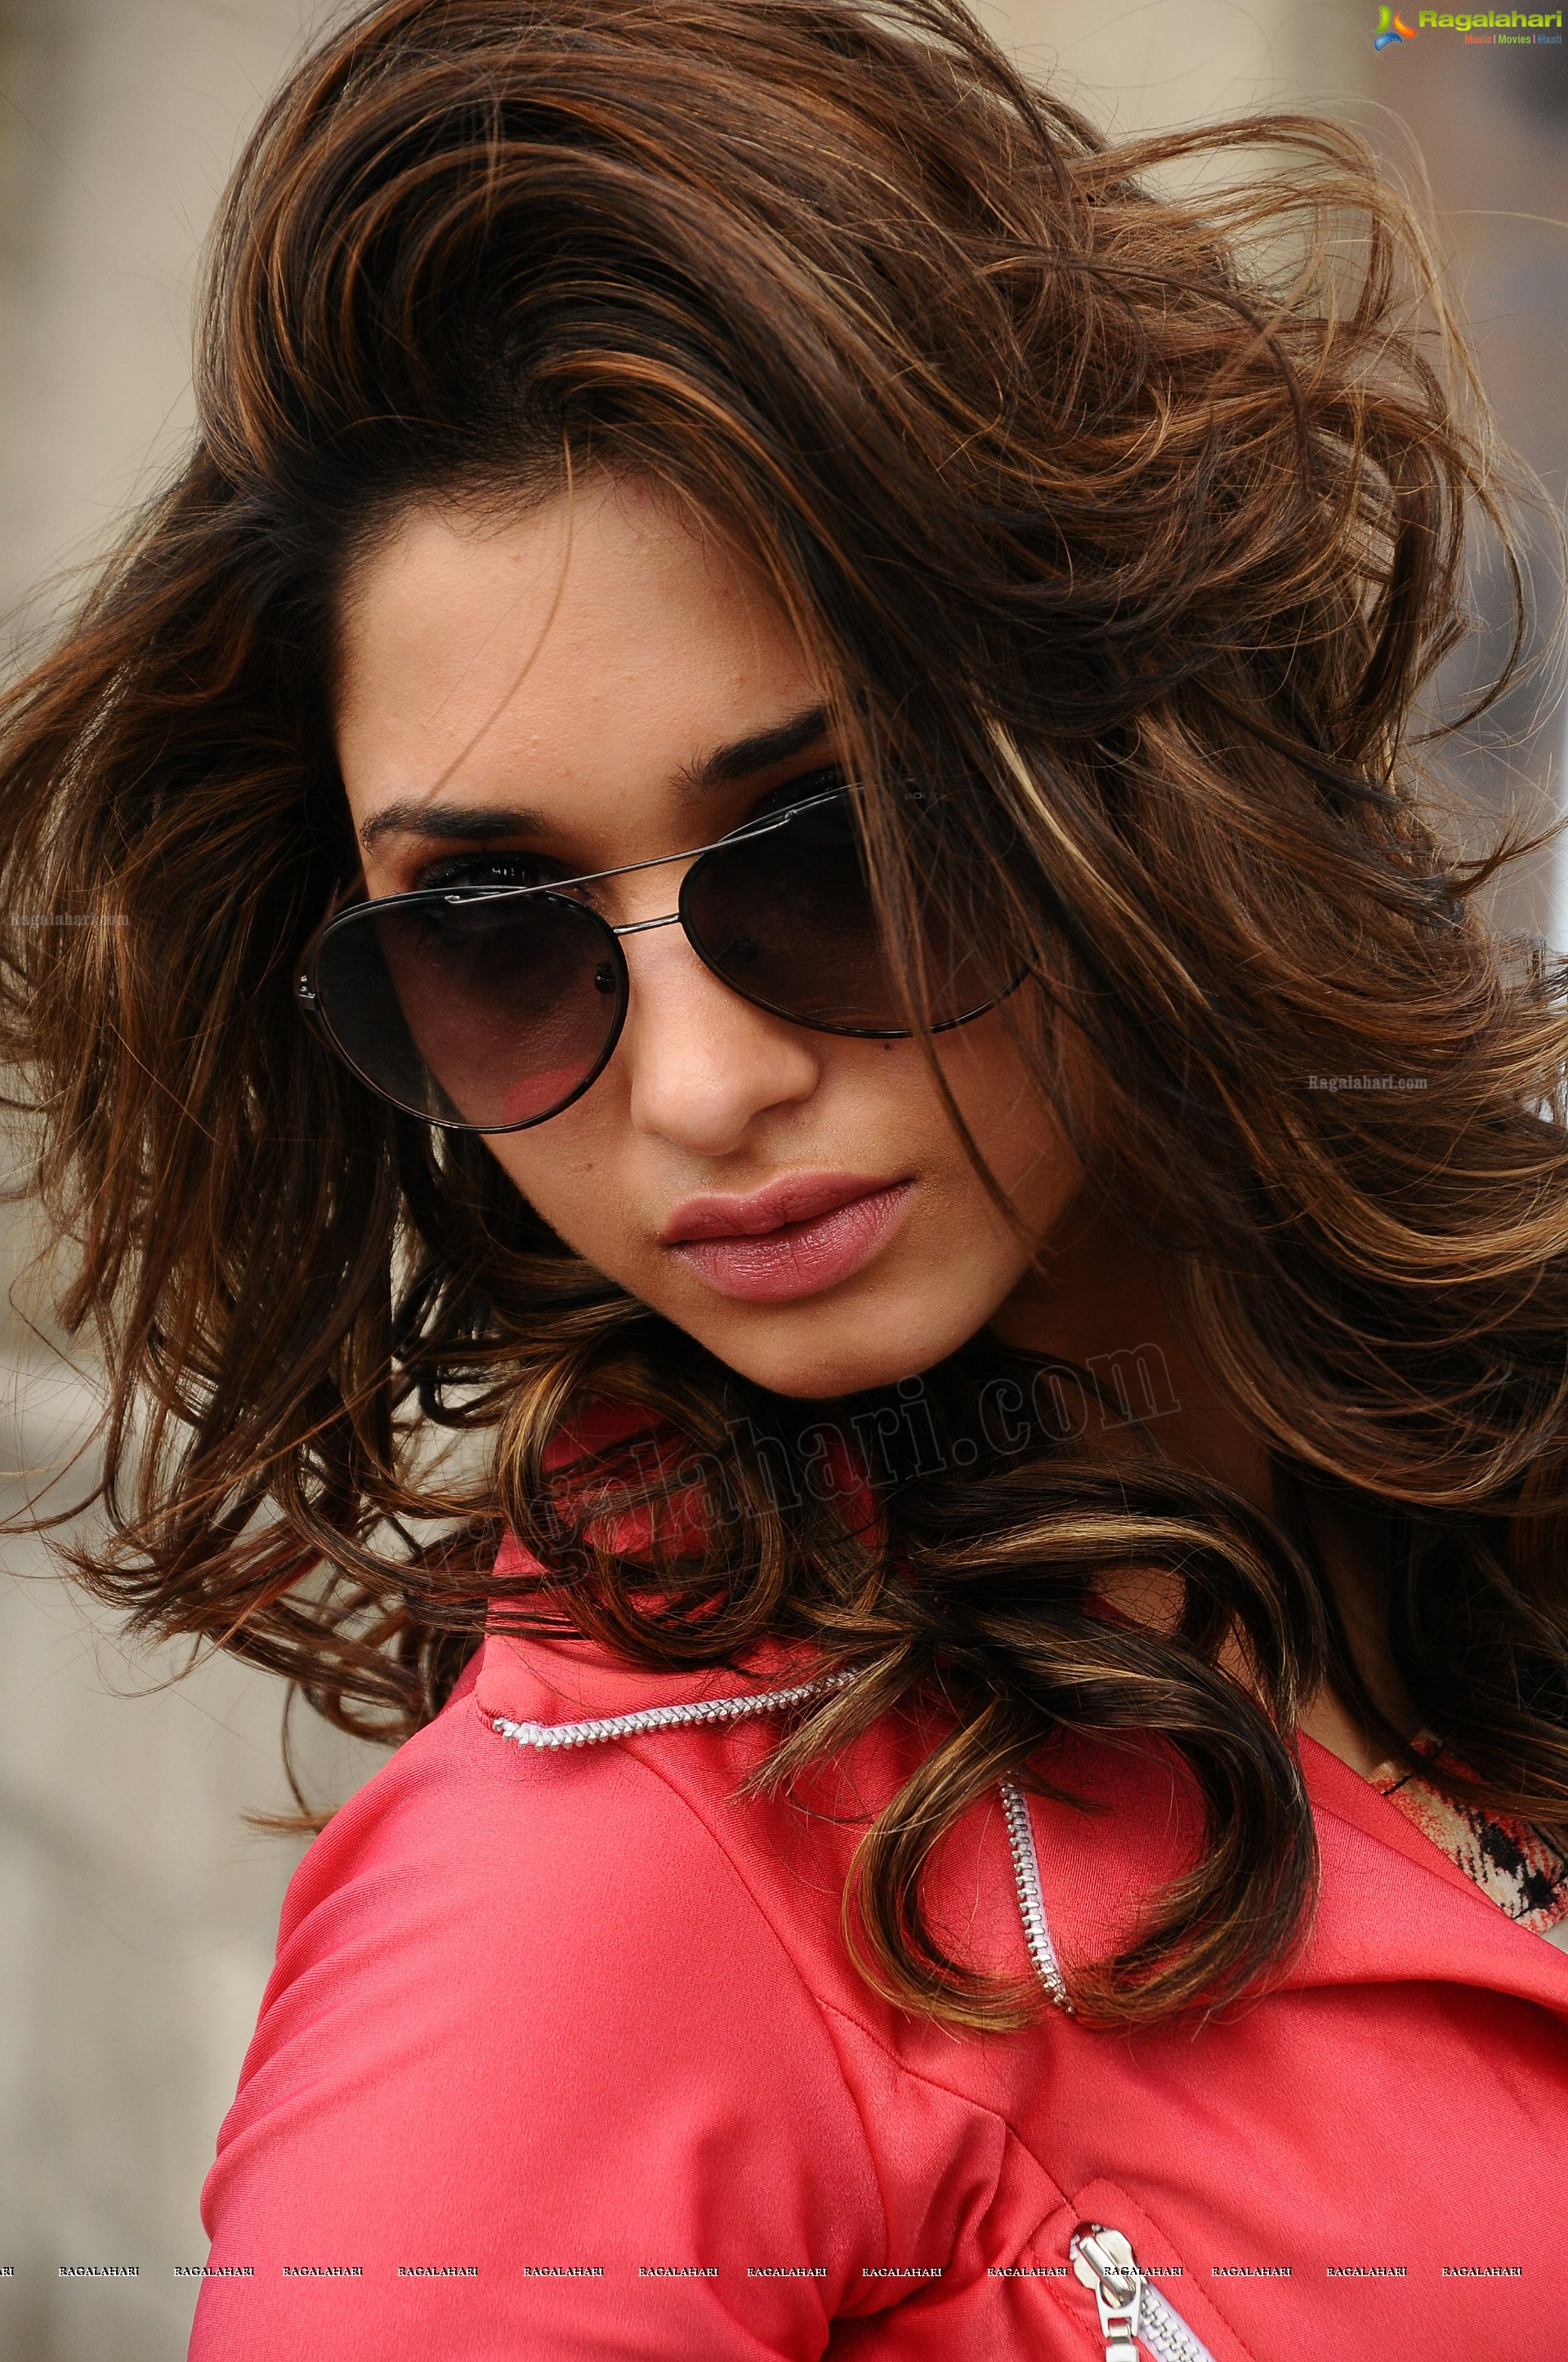 250 photos: tamanna in humshakals - super high definition photos